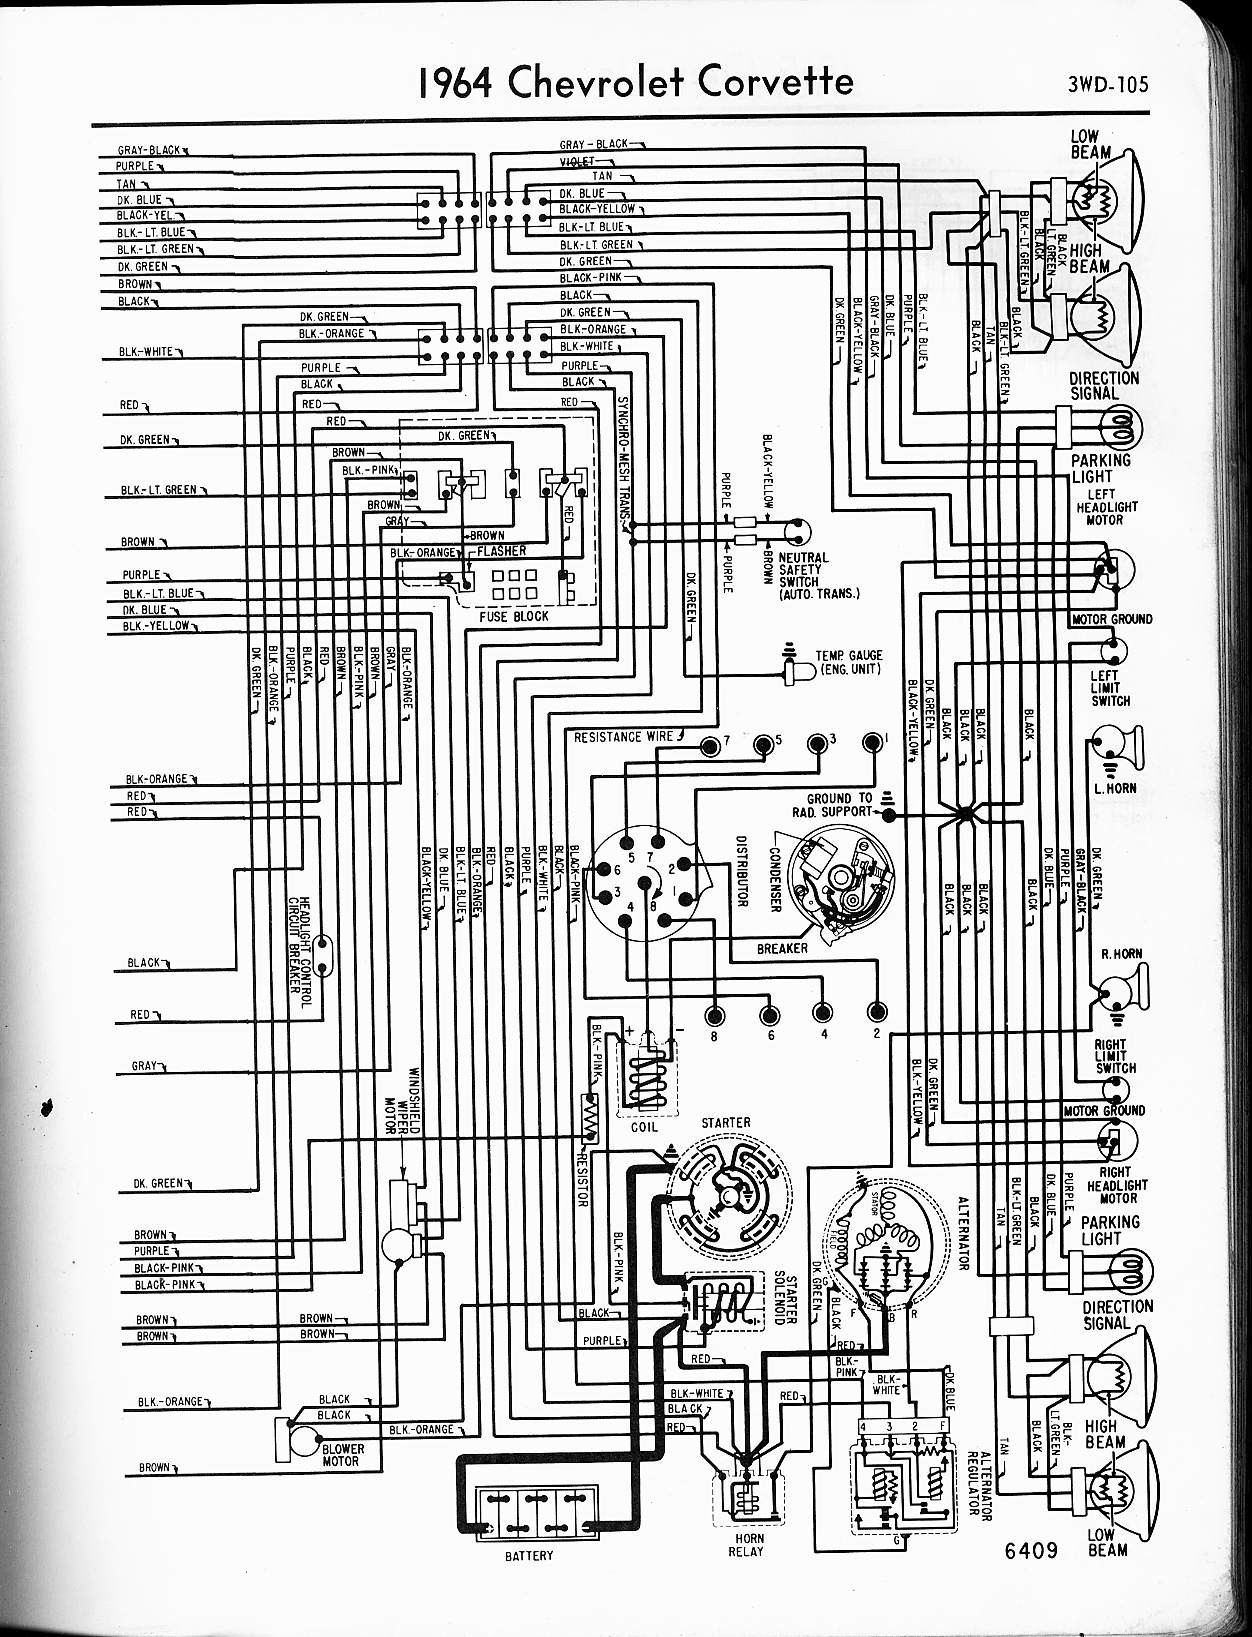 1981 chevy truck wiring diagram 1972 corvette wiper wiring diagram 1959 corvette starter wiring of 1981 chevy truck wiring diagram 64 chevy truck starter wiring wiring diagram